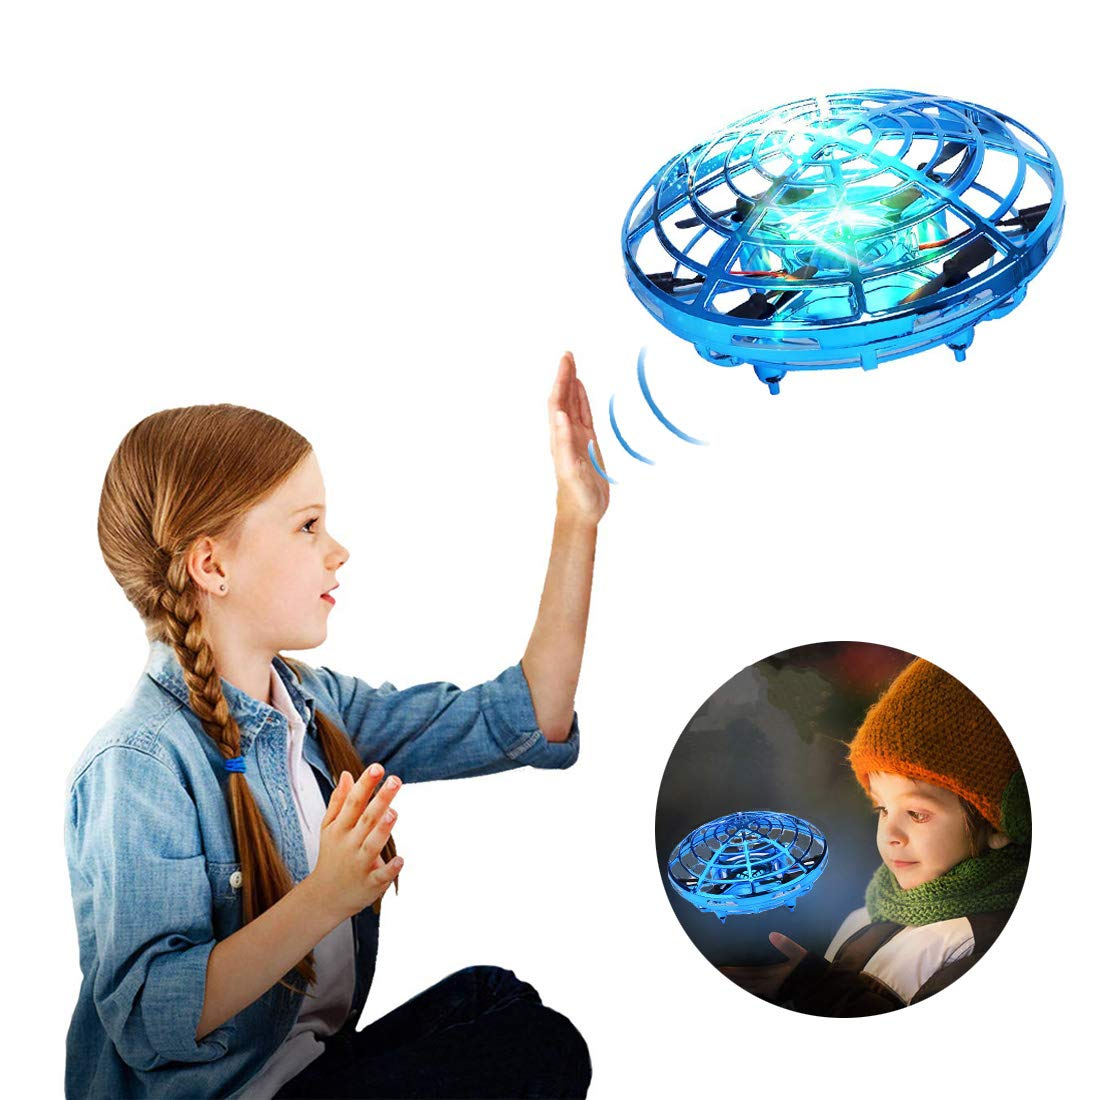 Hand Operated Drones for Kids or Adult, Mini Drone Flying Ball Toy, Scoot UFO Hand Free Infrared Sensing Drone Toys for Boys and Girls Holiday and Birthday Gifts